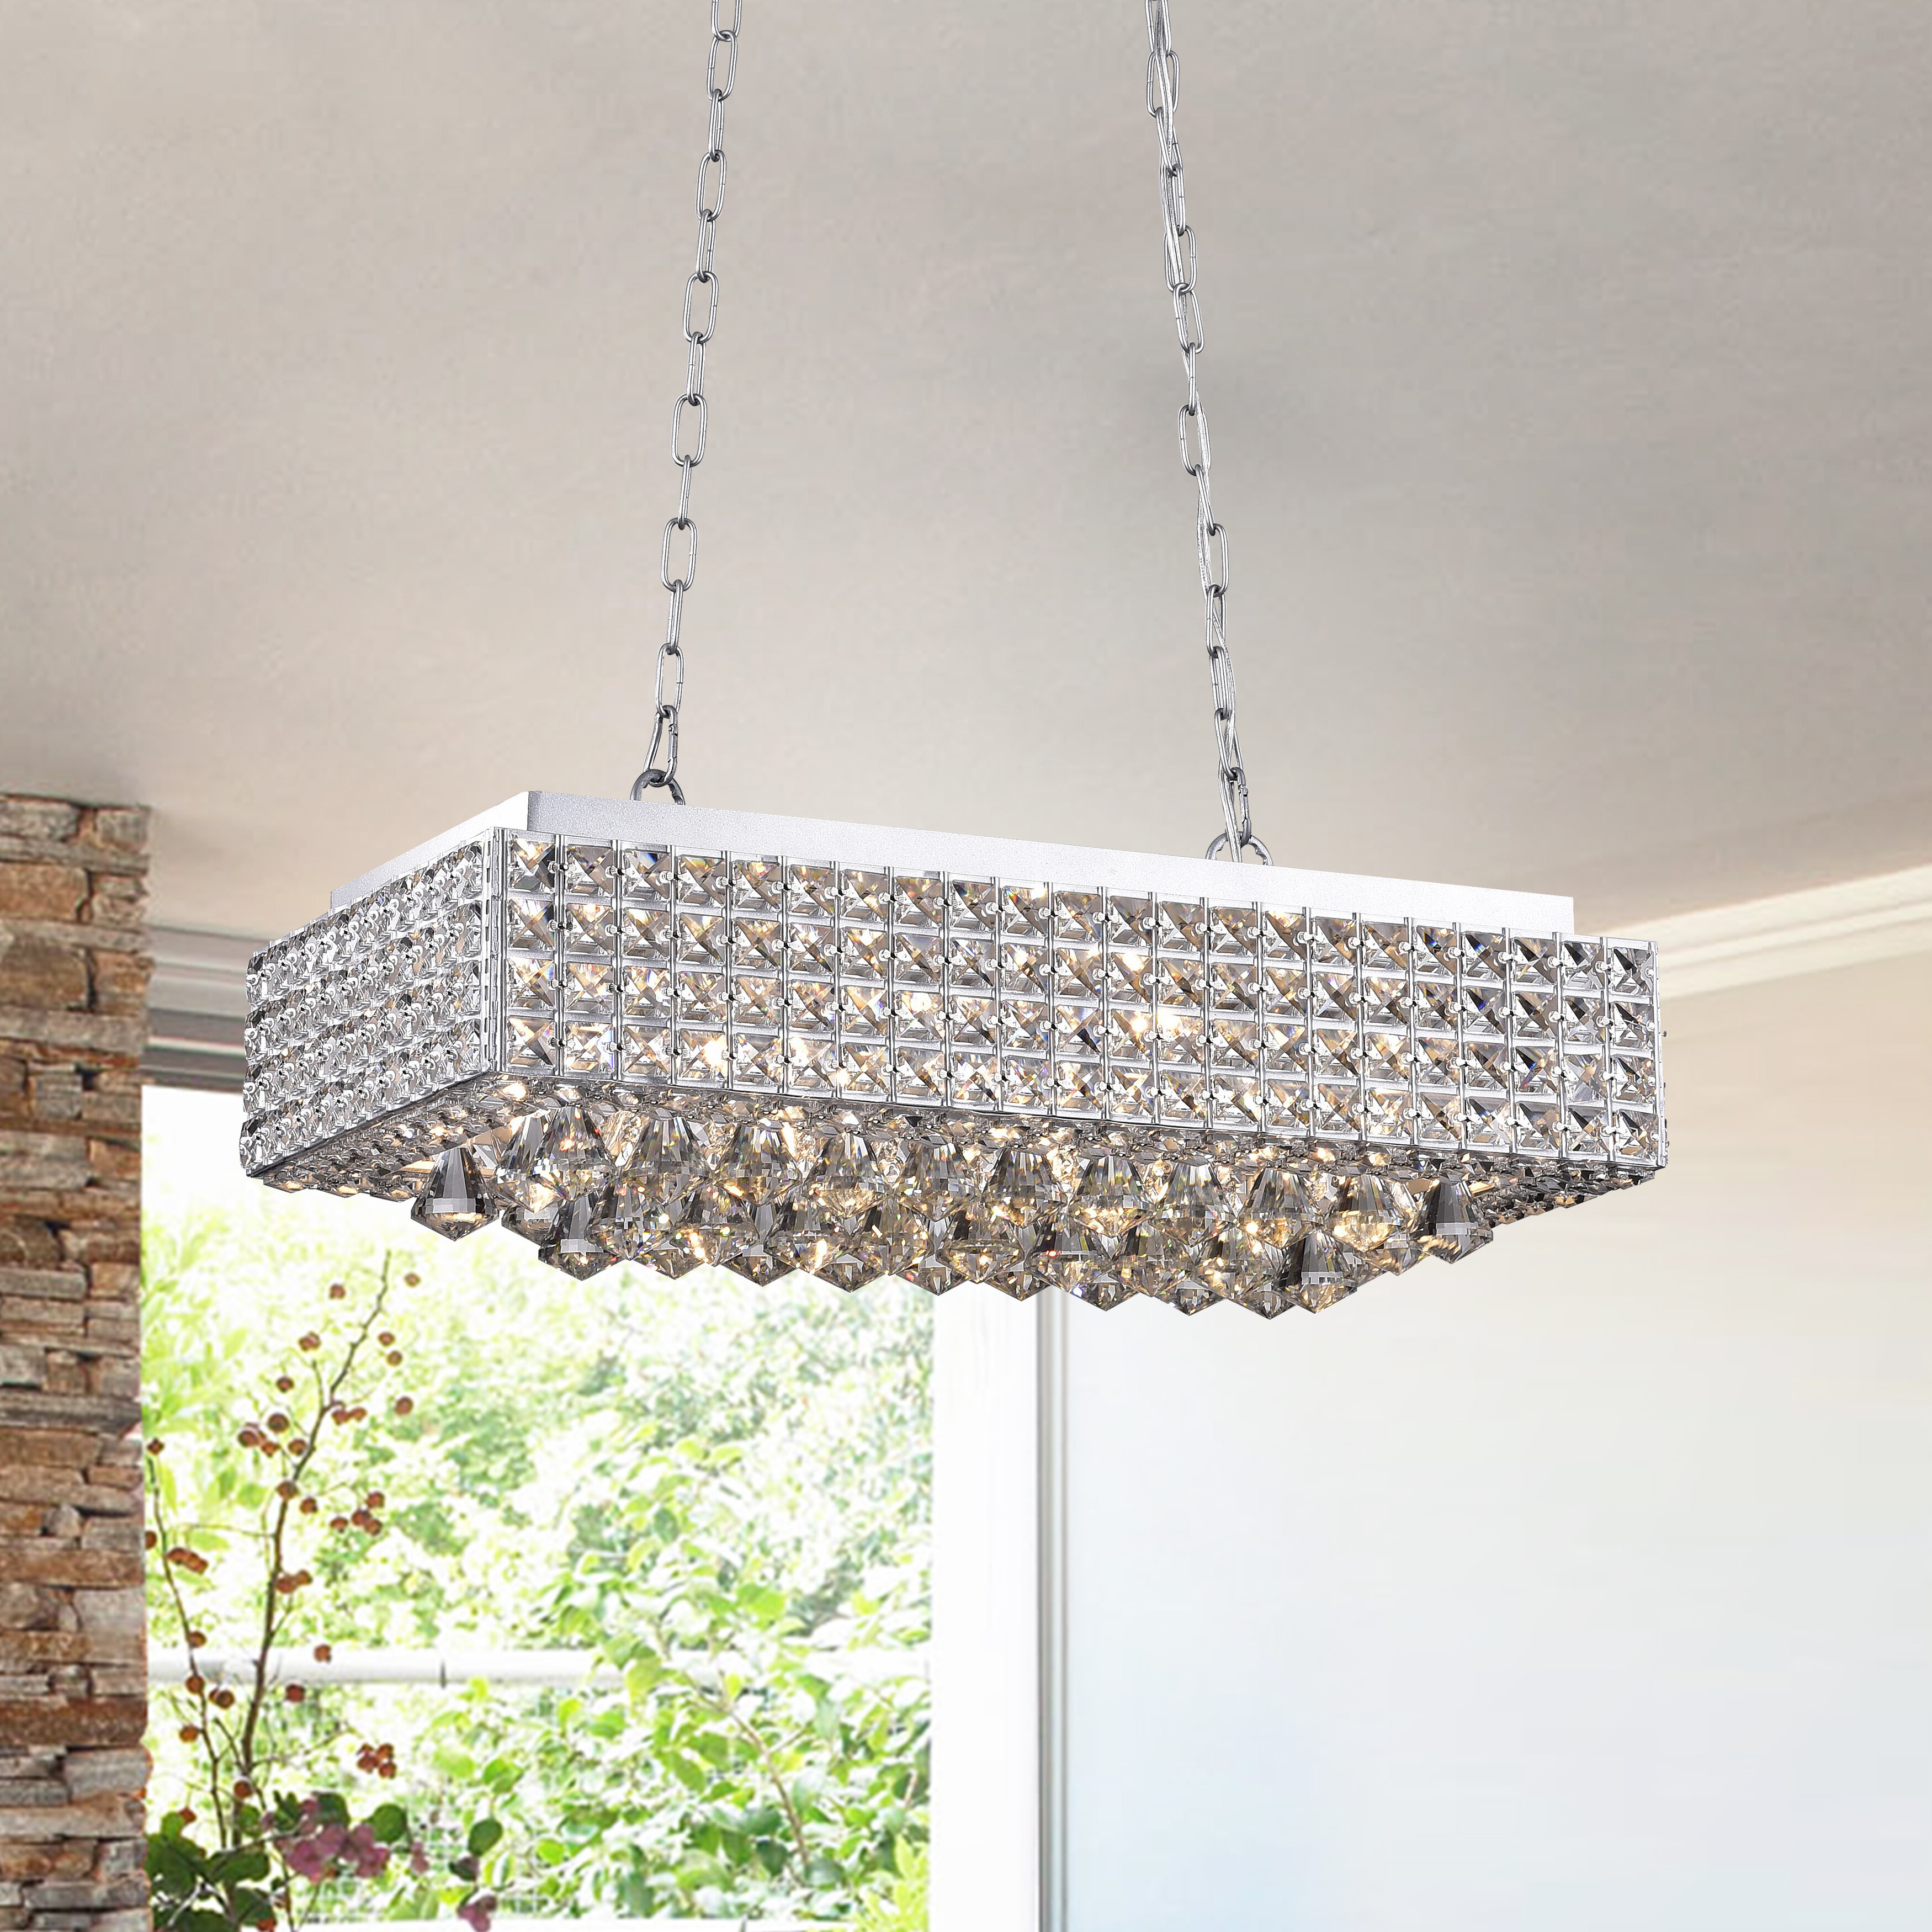 Willa Arlo Interiors Dhairya 8 Light Kitchen Island Pendant Inside Widely Used Gracelyn 8 Light Kitchen Island Pendants (View 20 of 20)